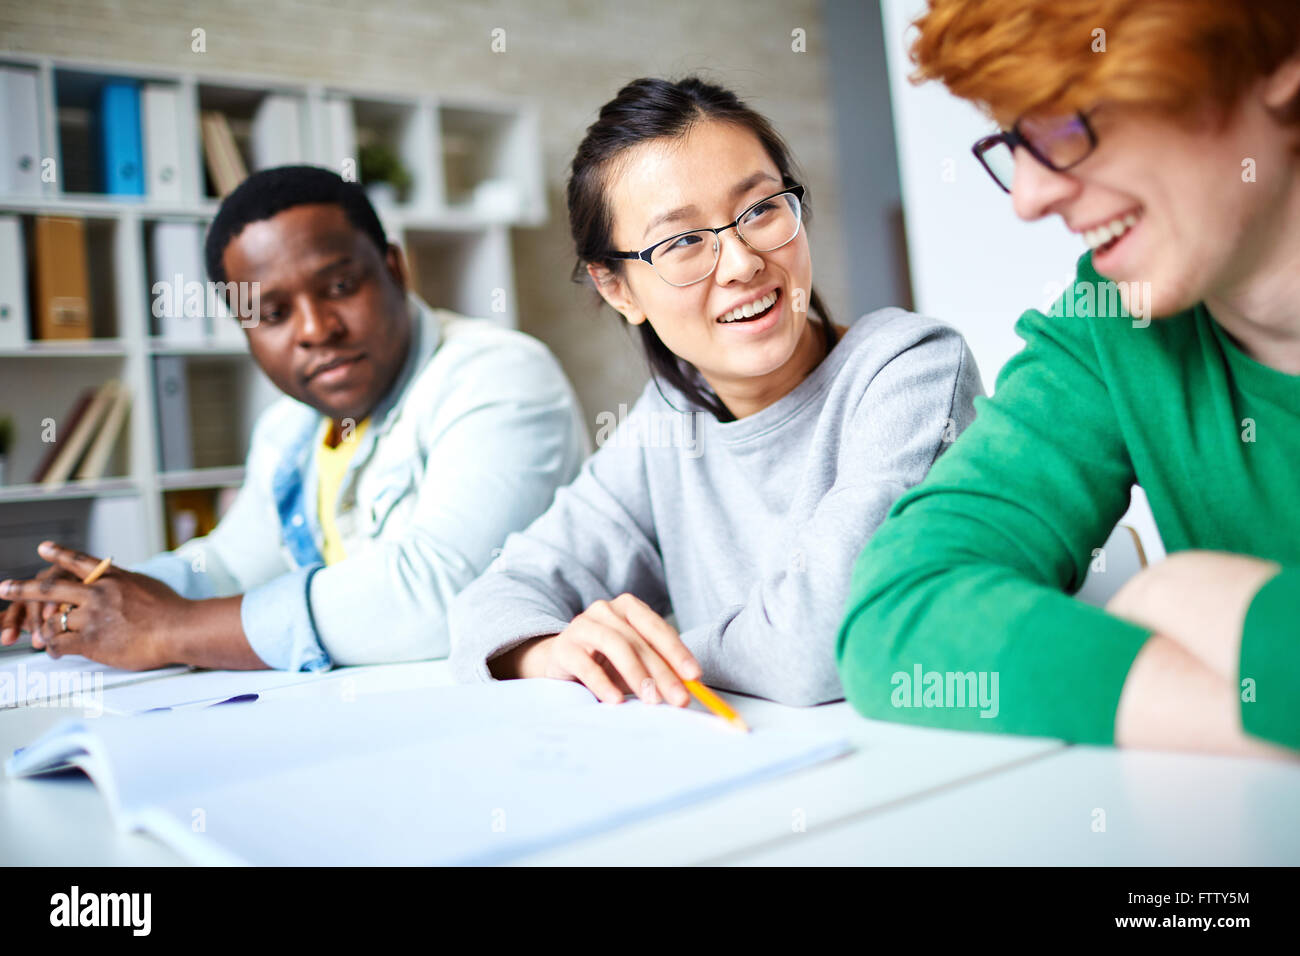 Students interacting - Stock Image